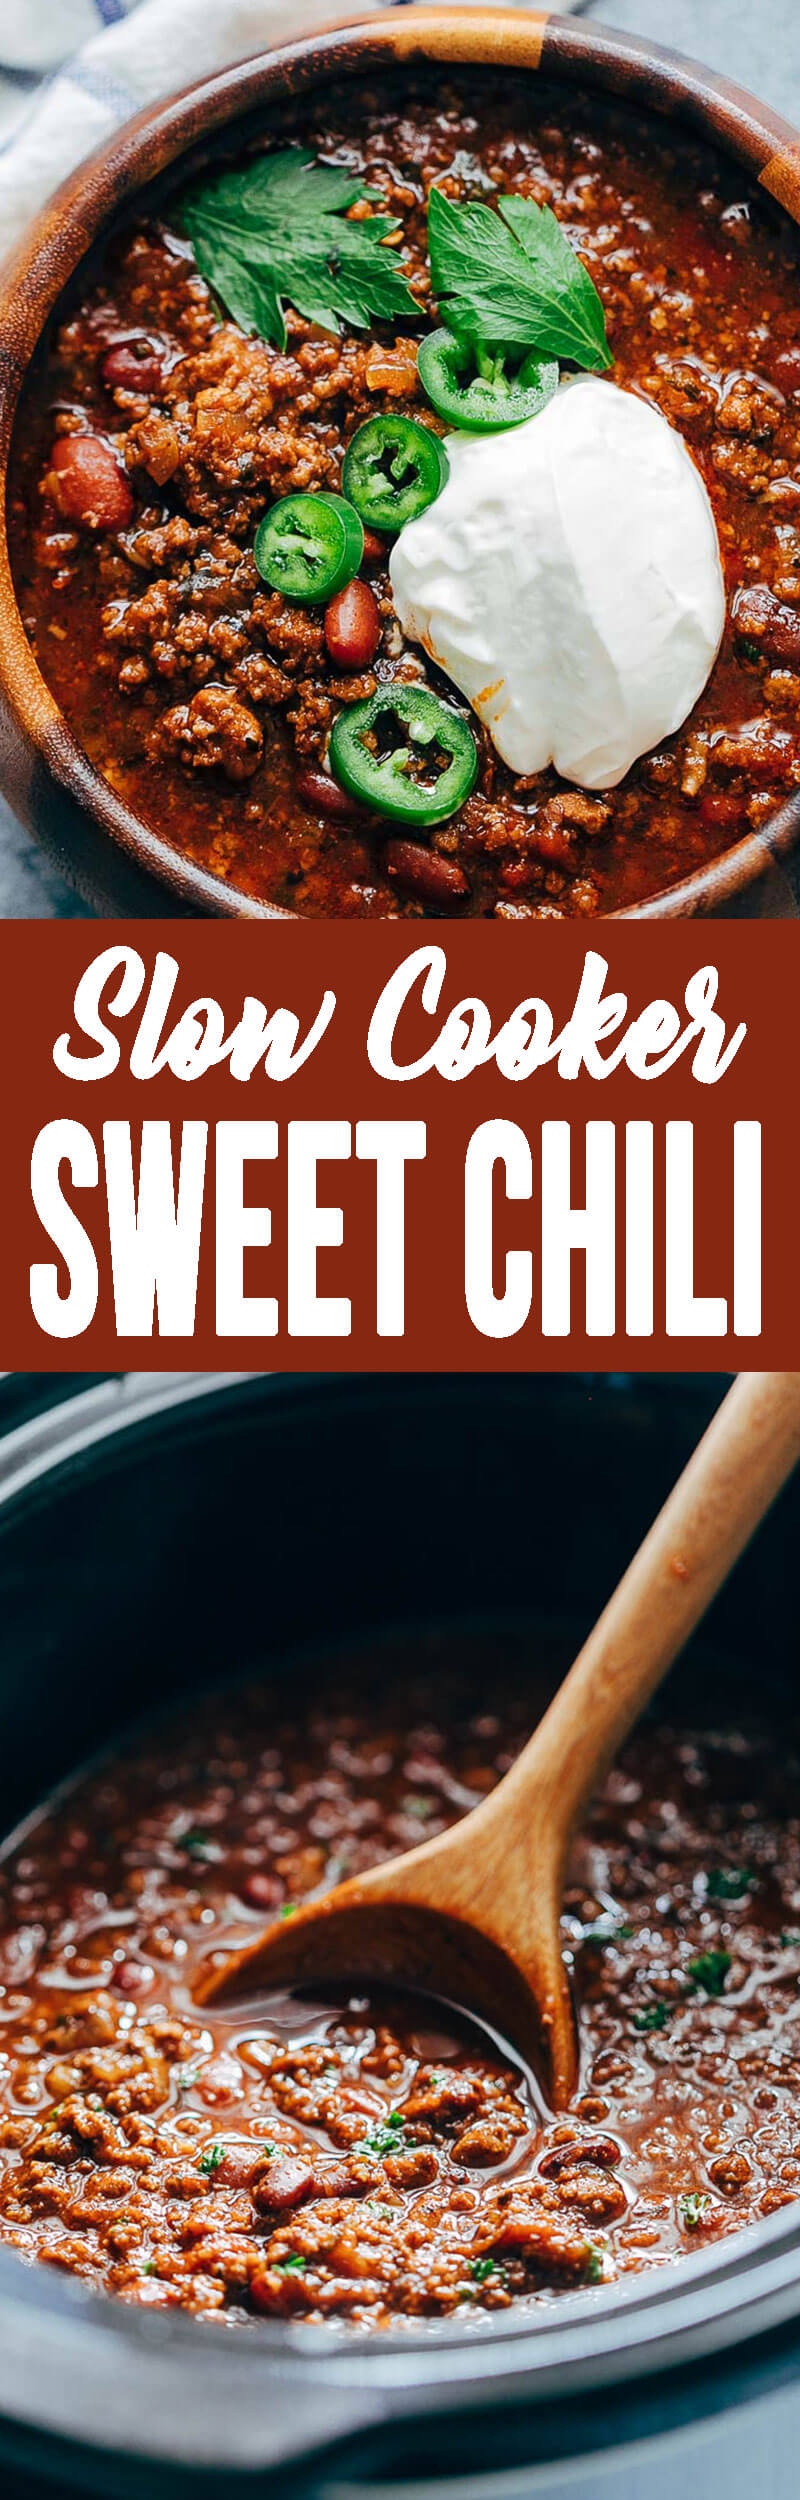 Slow Cooker Sweet Chili